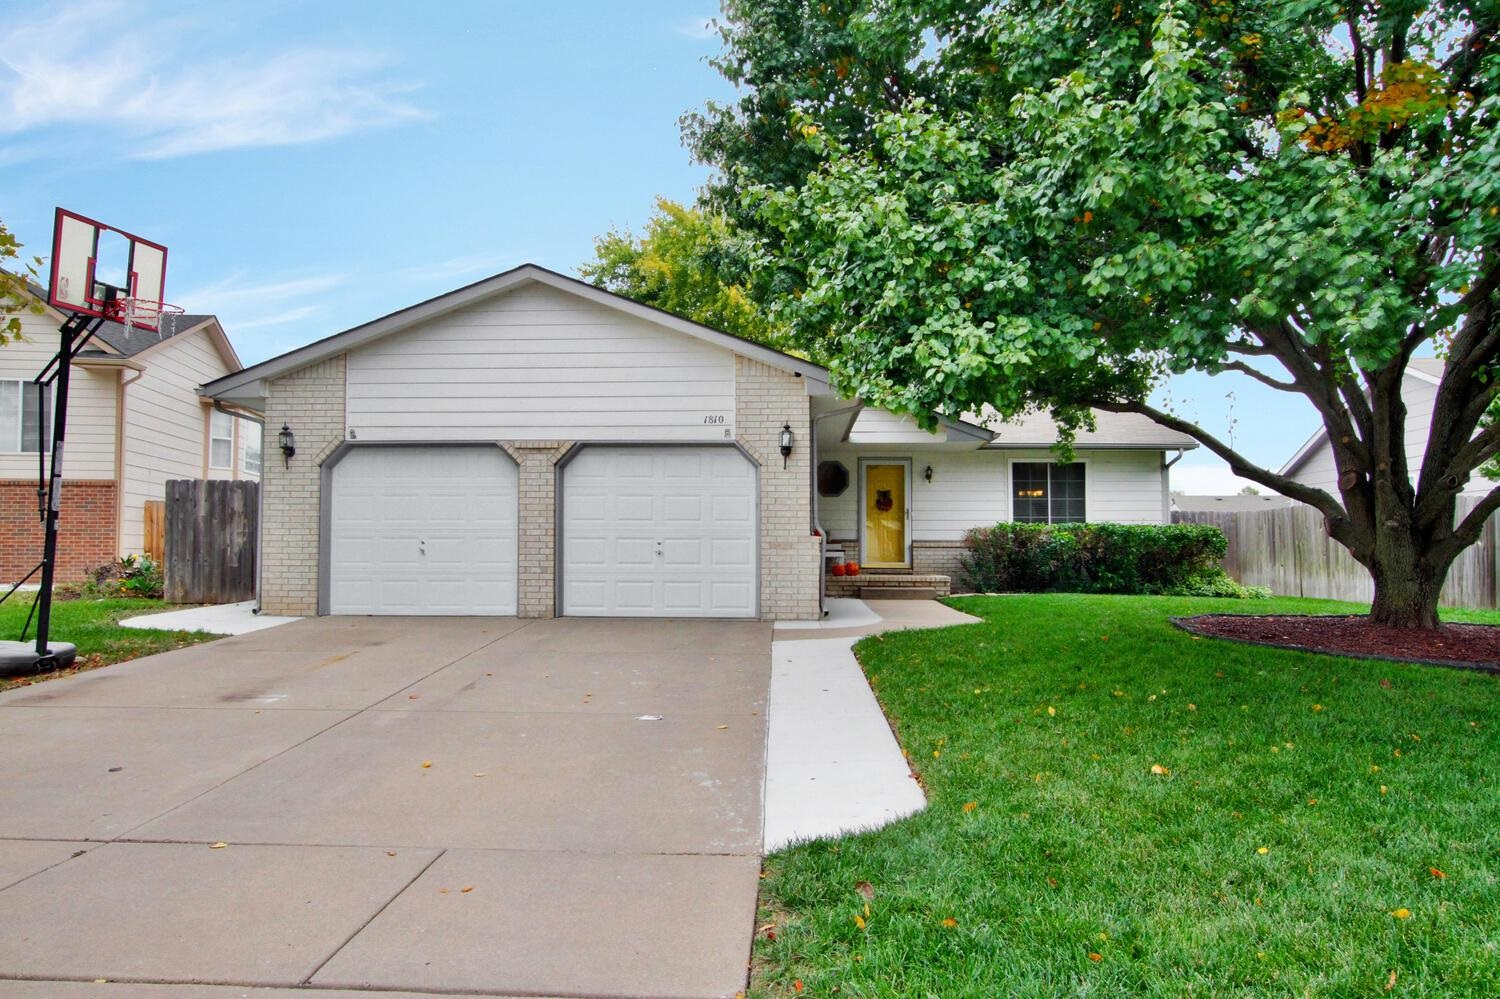 Located in desired Goddard School District, this charming 3 bedroom ranch has vaulted ceilings and o